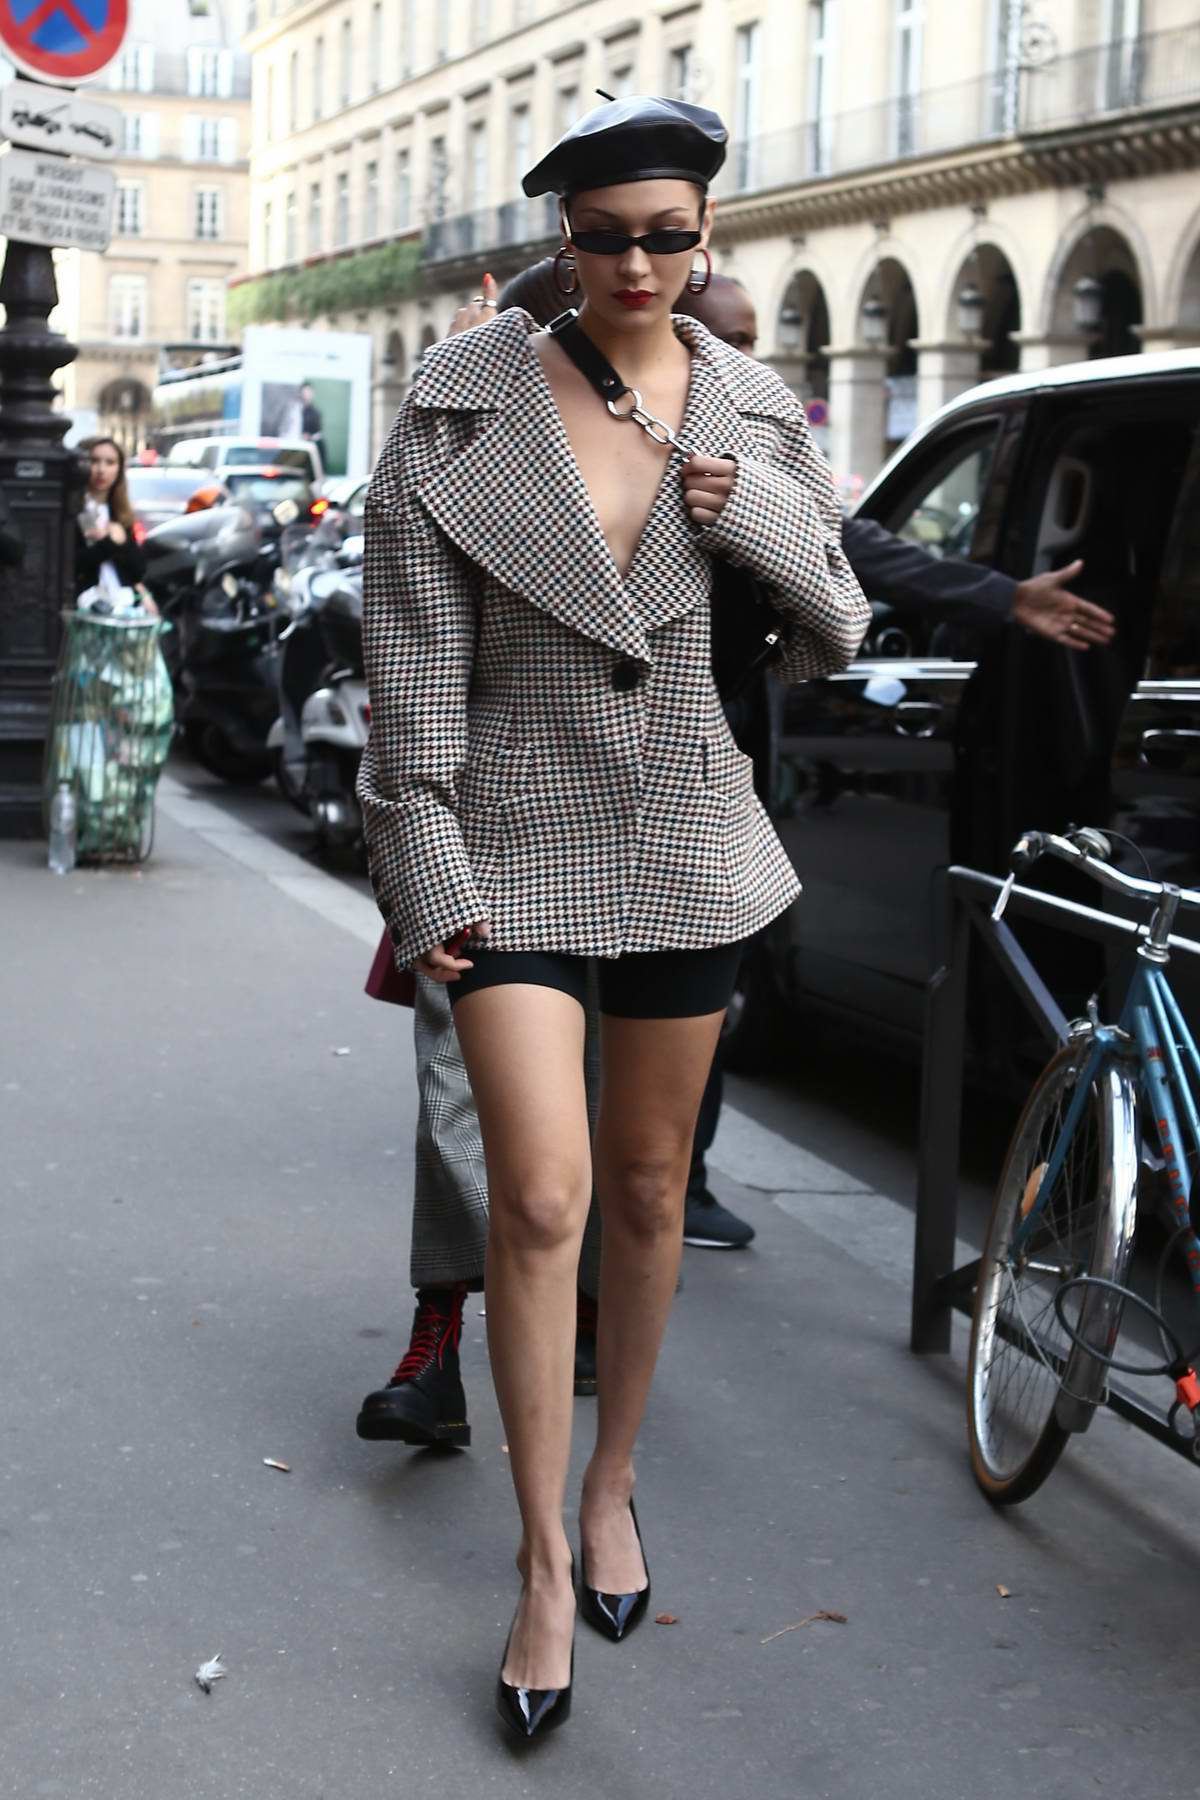 Bella Hadid out and about during Fashion Week in Paris, France